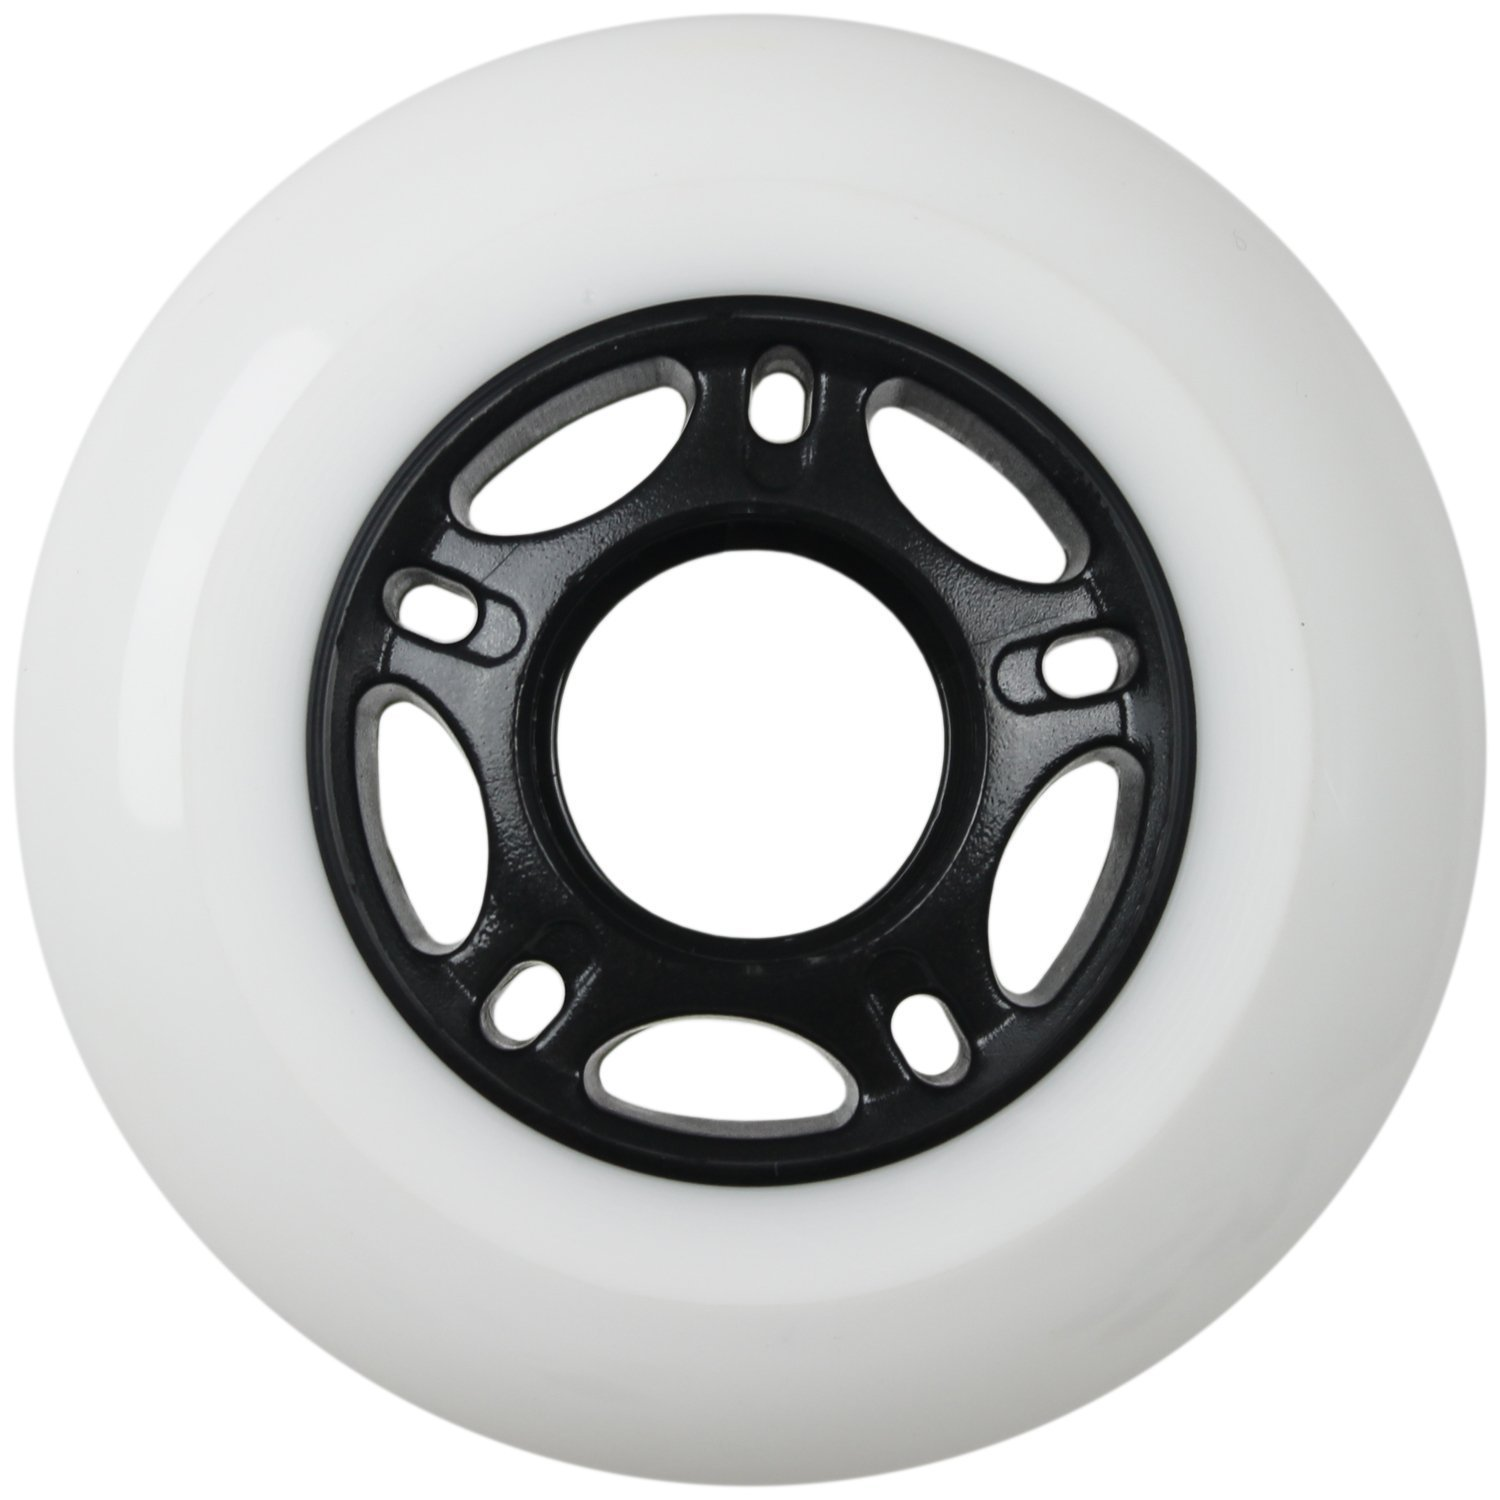 Players Choice Outdoor Inline Skate Wheels 80MM 89a White x8 W//ABEC 9 Bearings